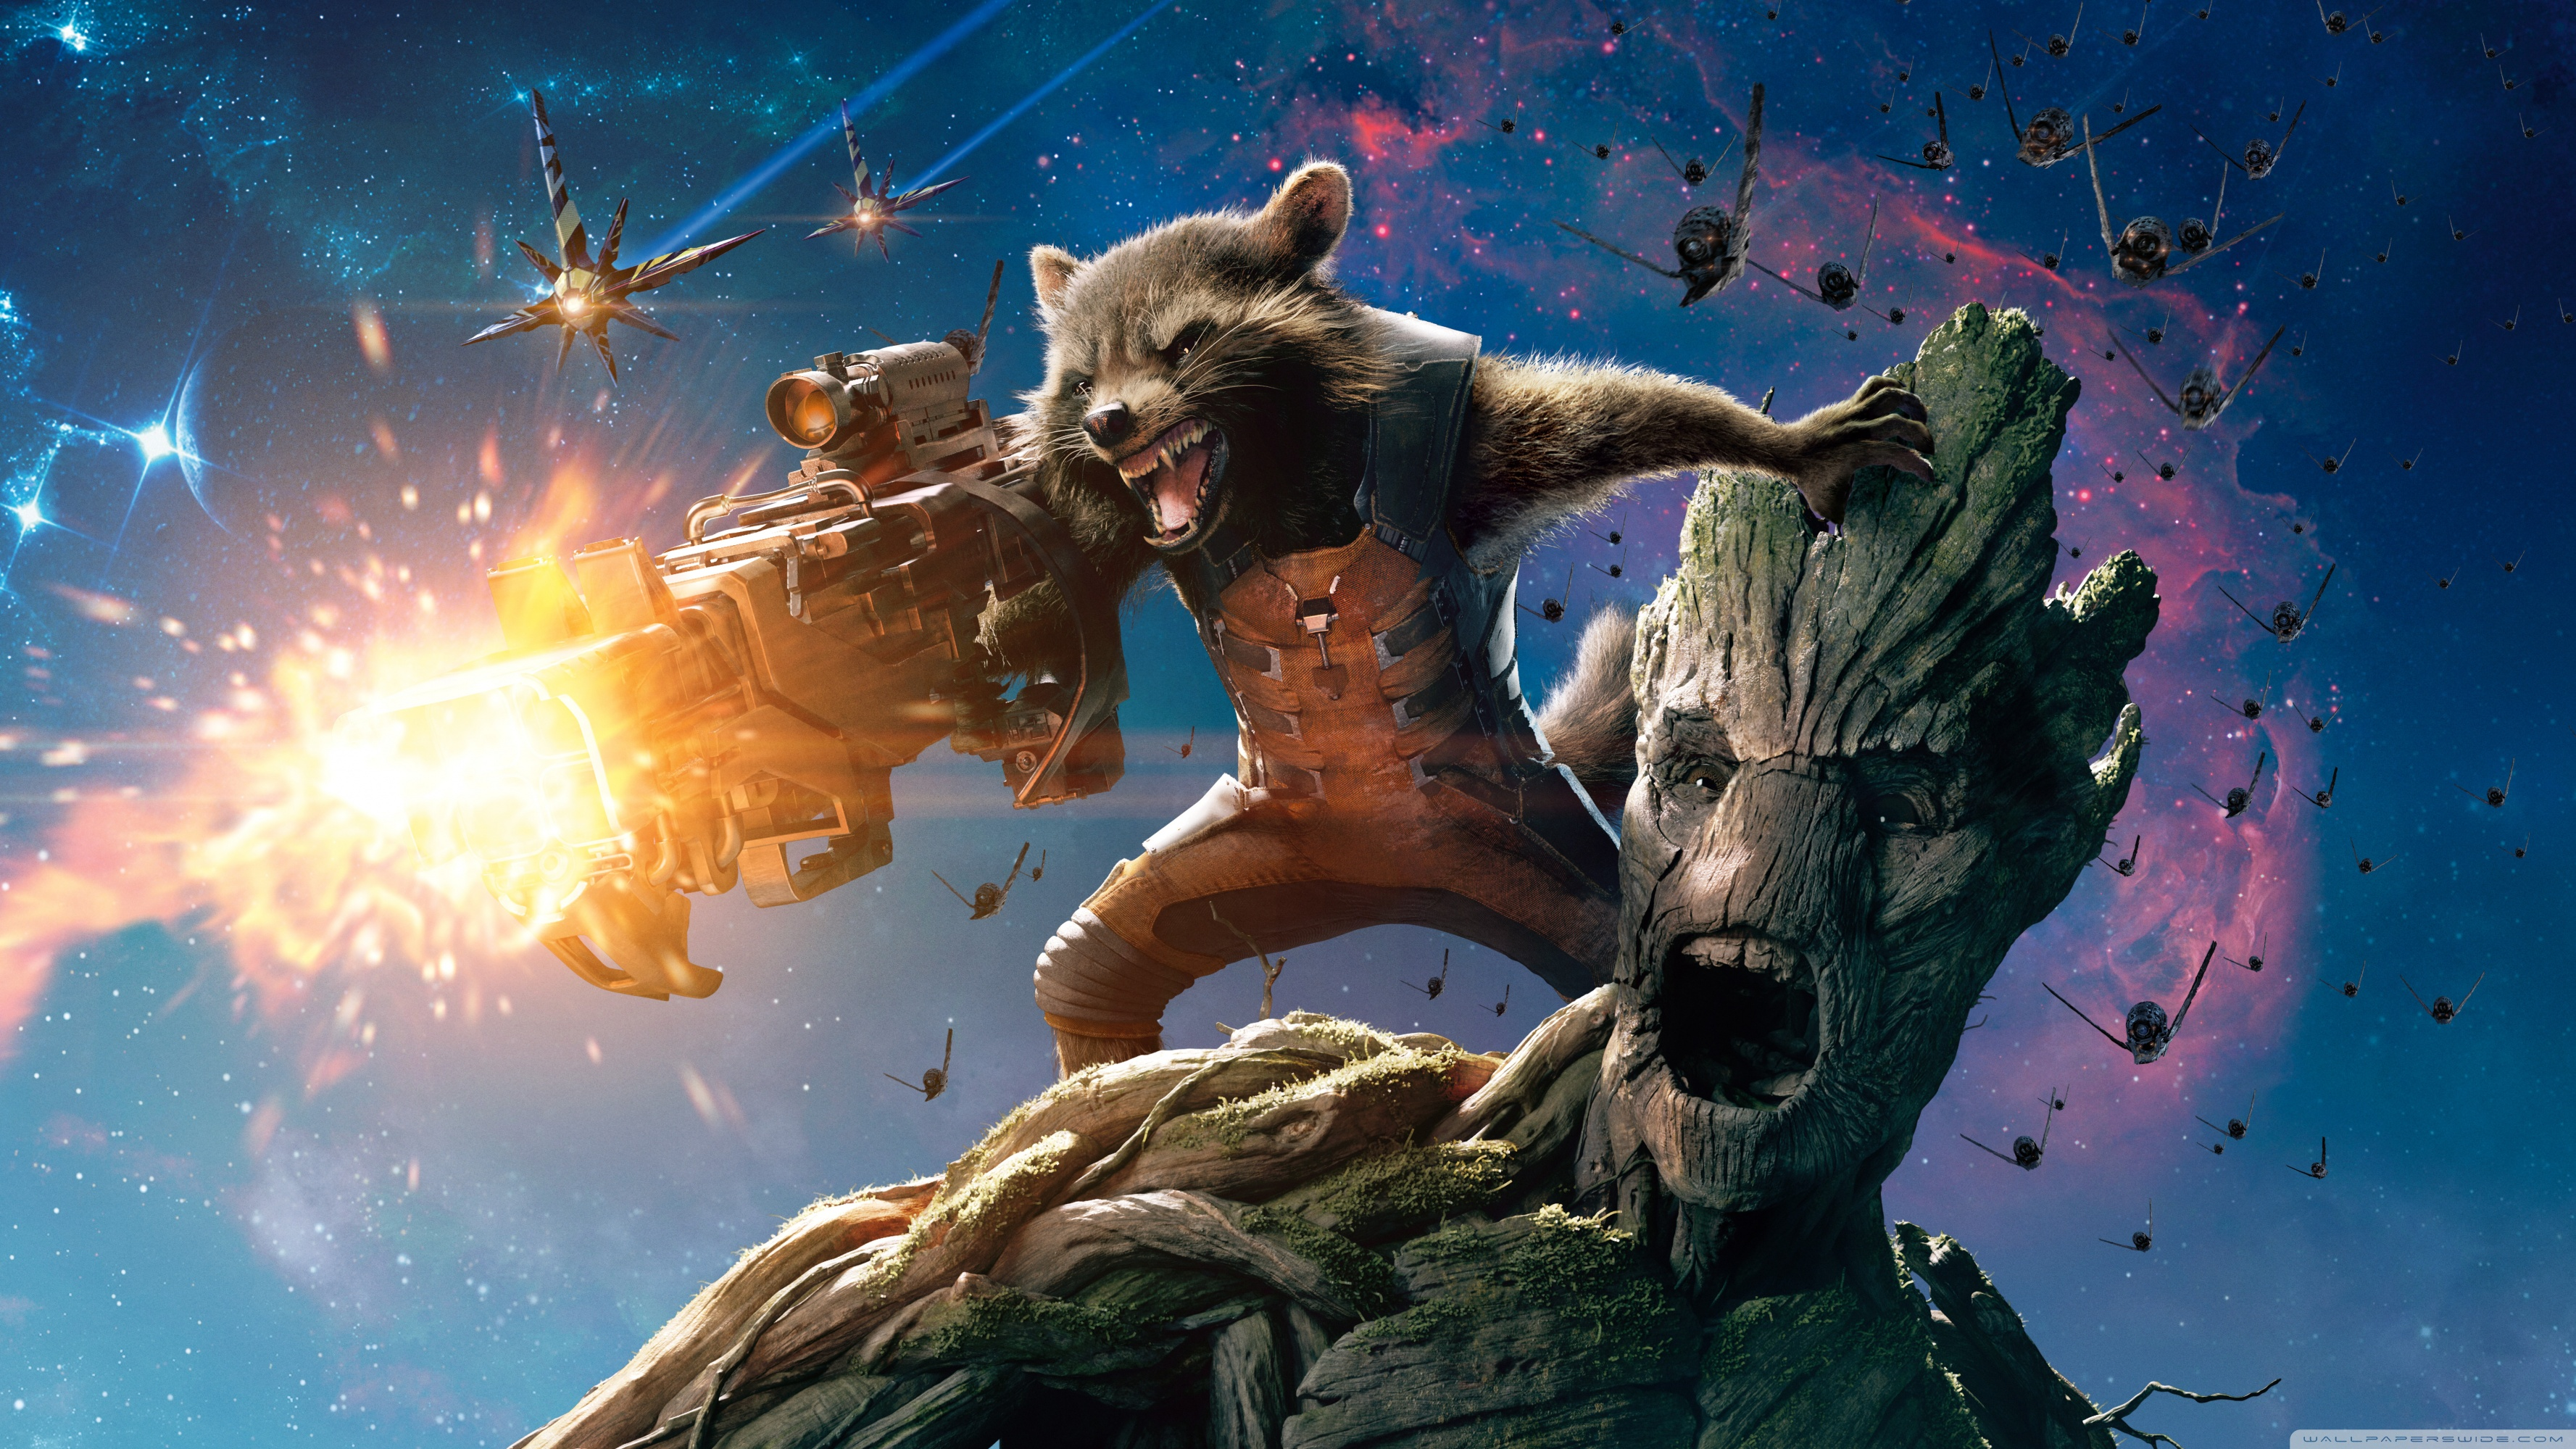 Baby Groot Guardians Of The Galaxy Guardians Of The Galaxy Groot And Rocket Raccoon 4k Hd